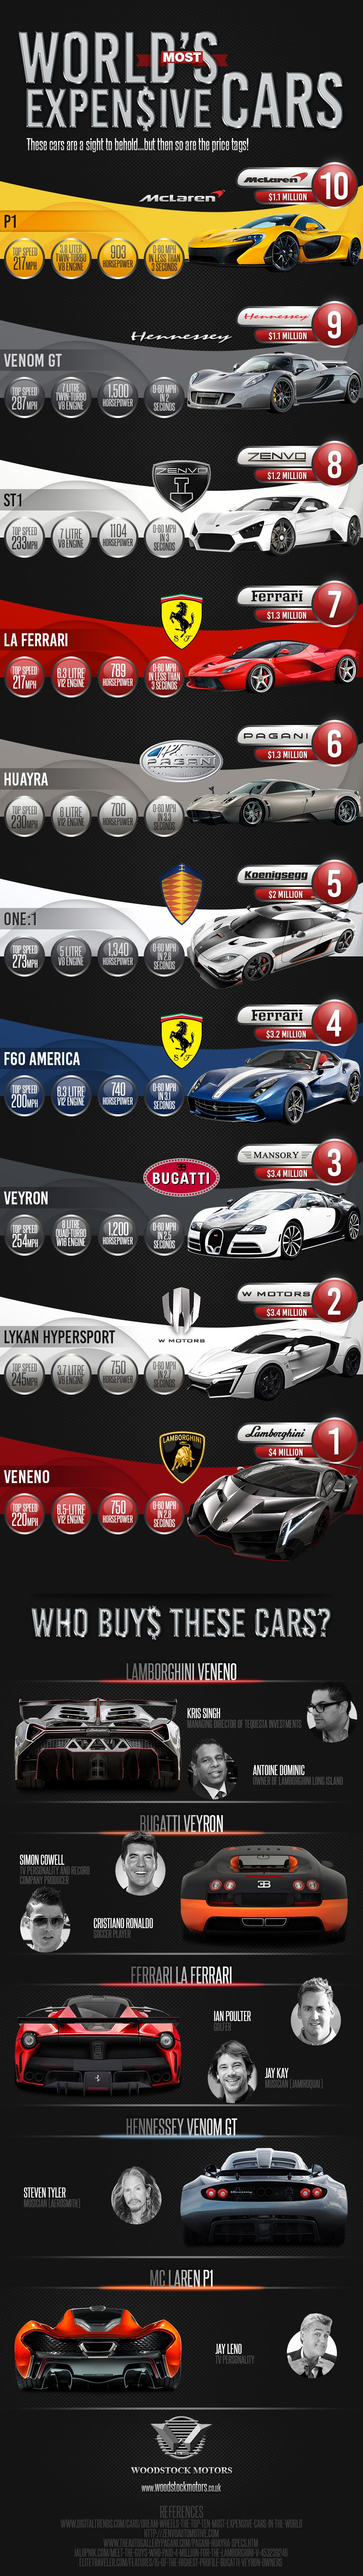 Most Expensive Cars Infographic